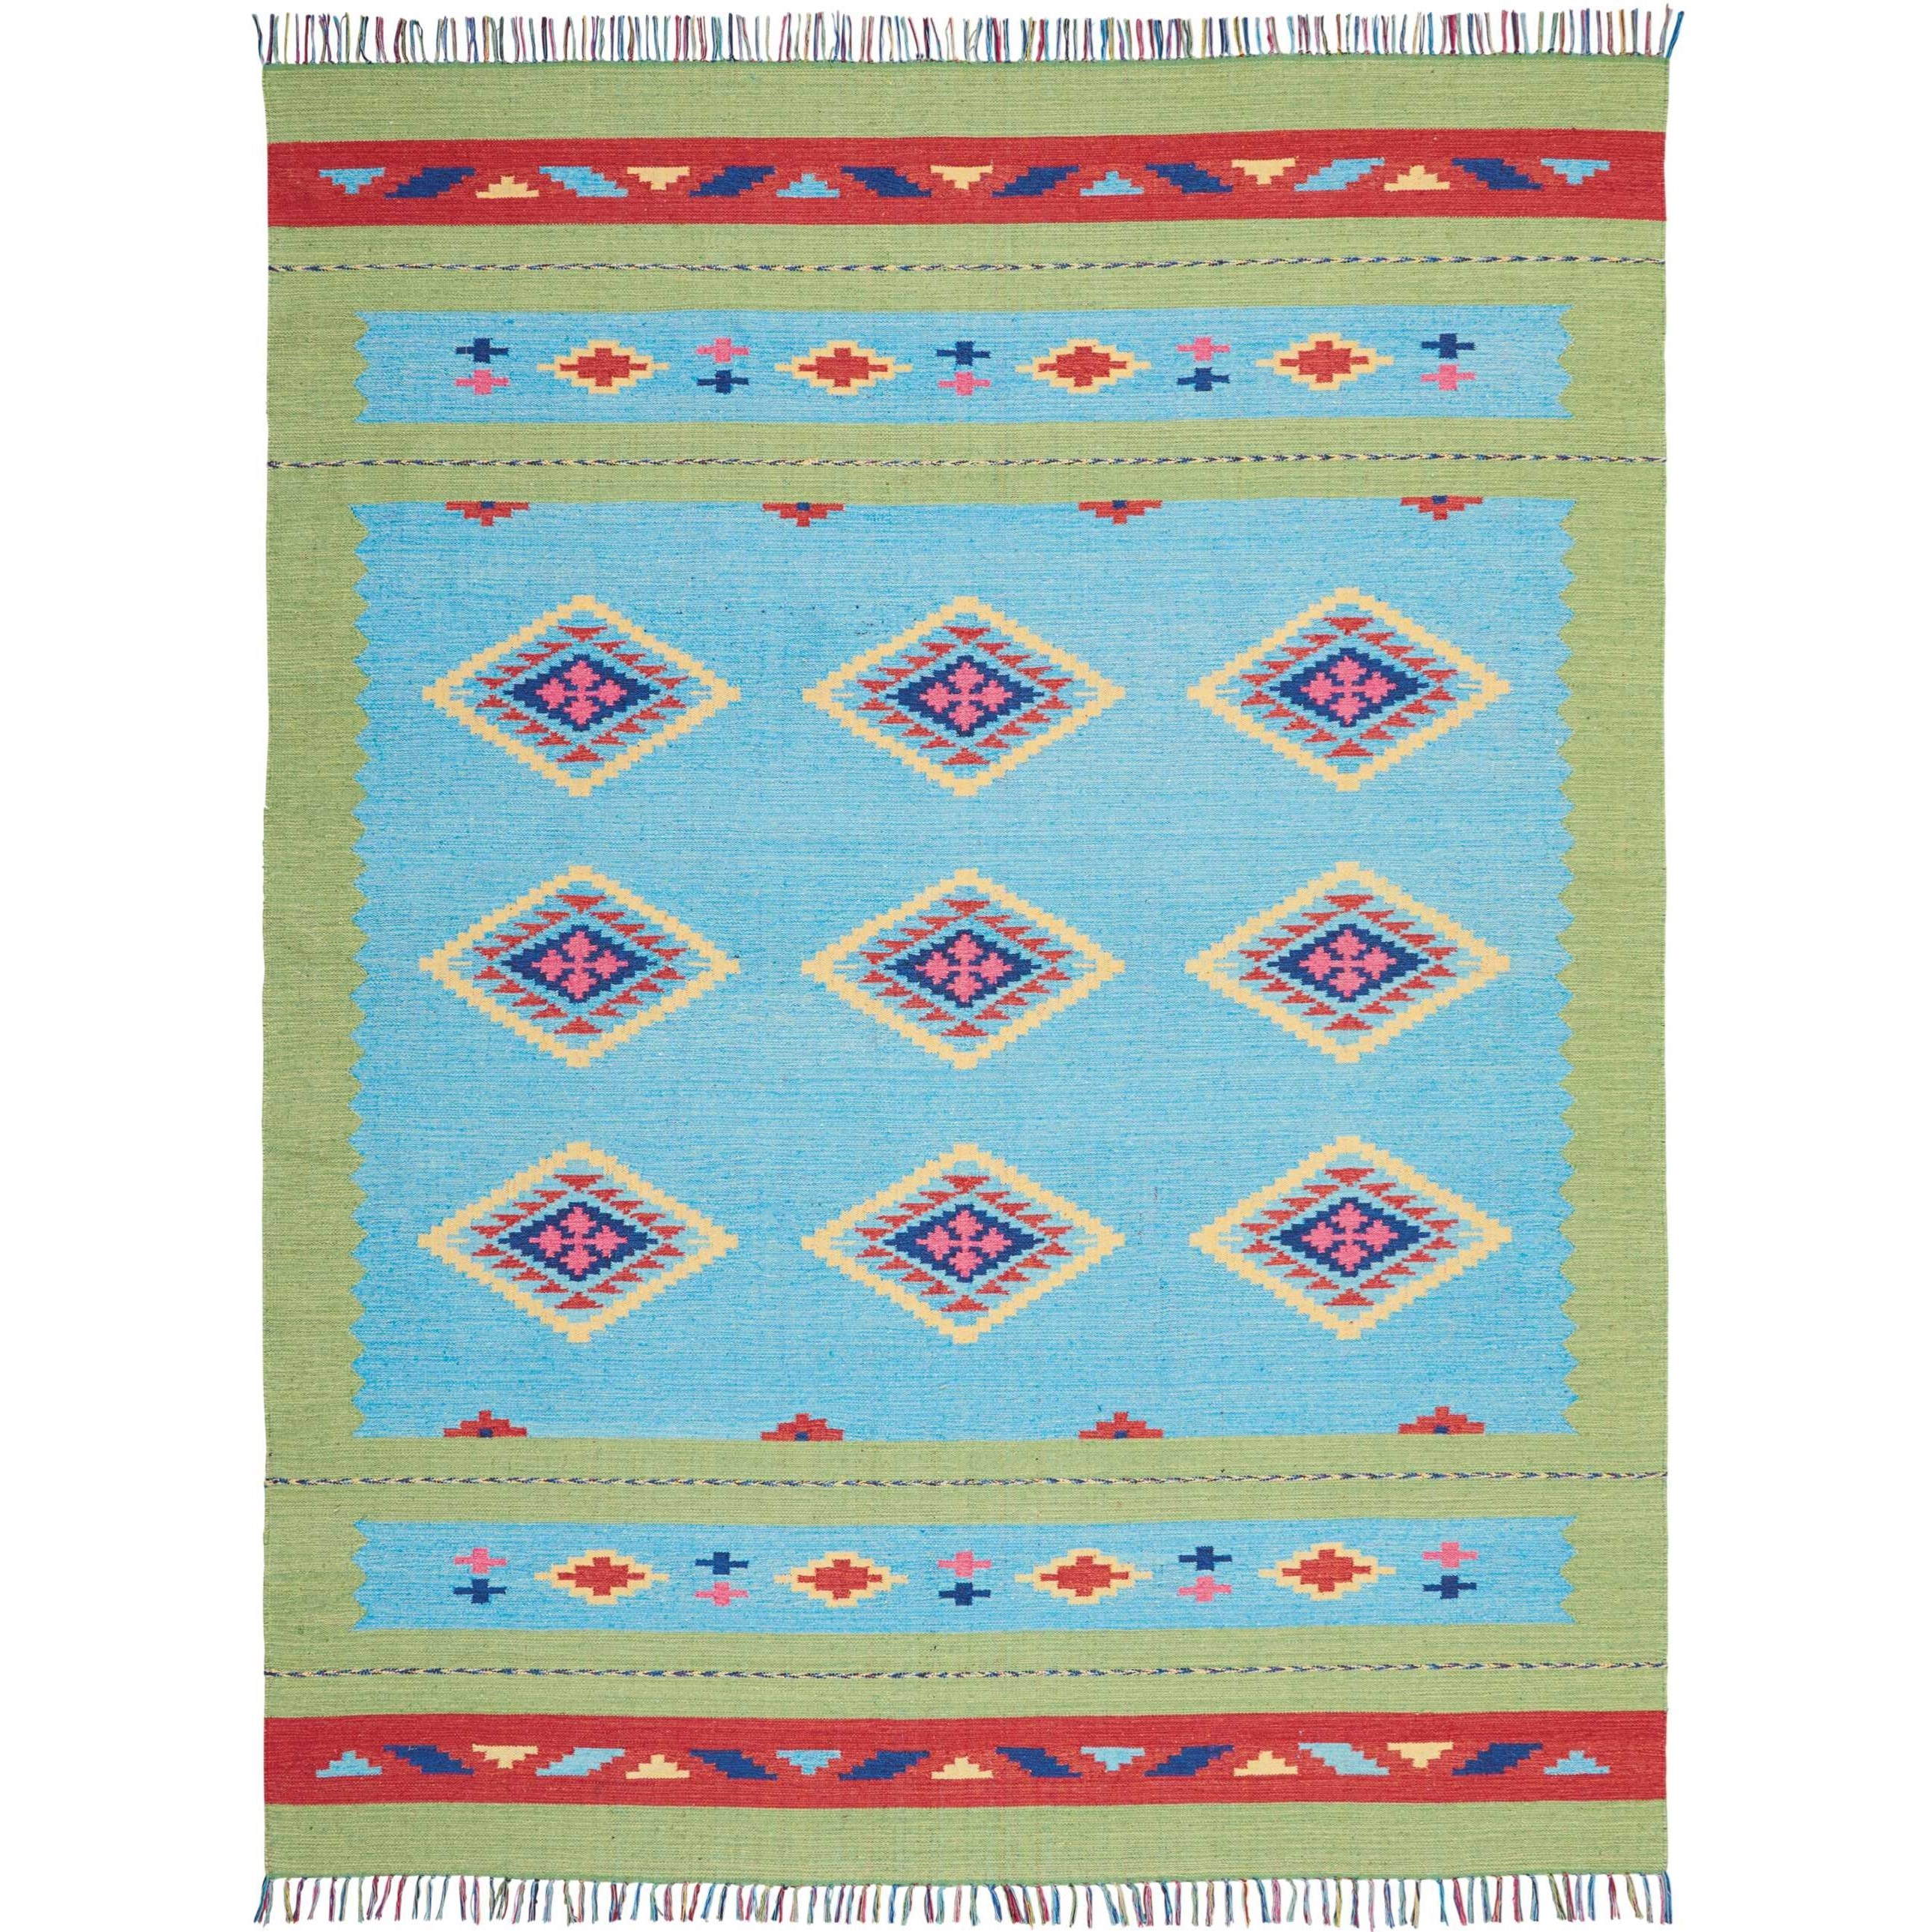 Baja 8' X 10' Blue Green Rug by Nourison at Home Collections Furniture